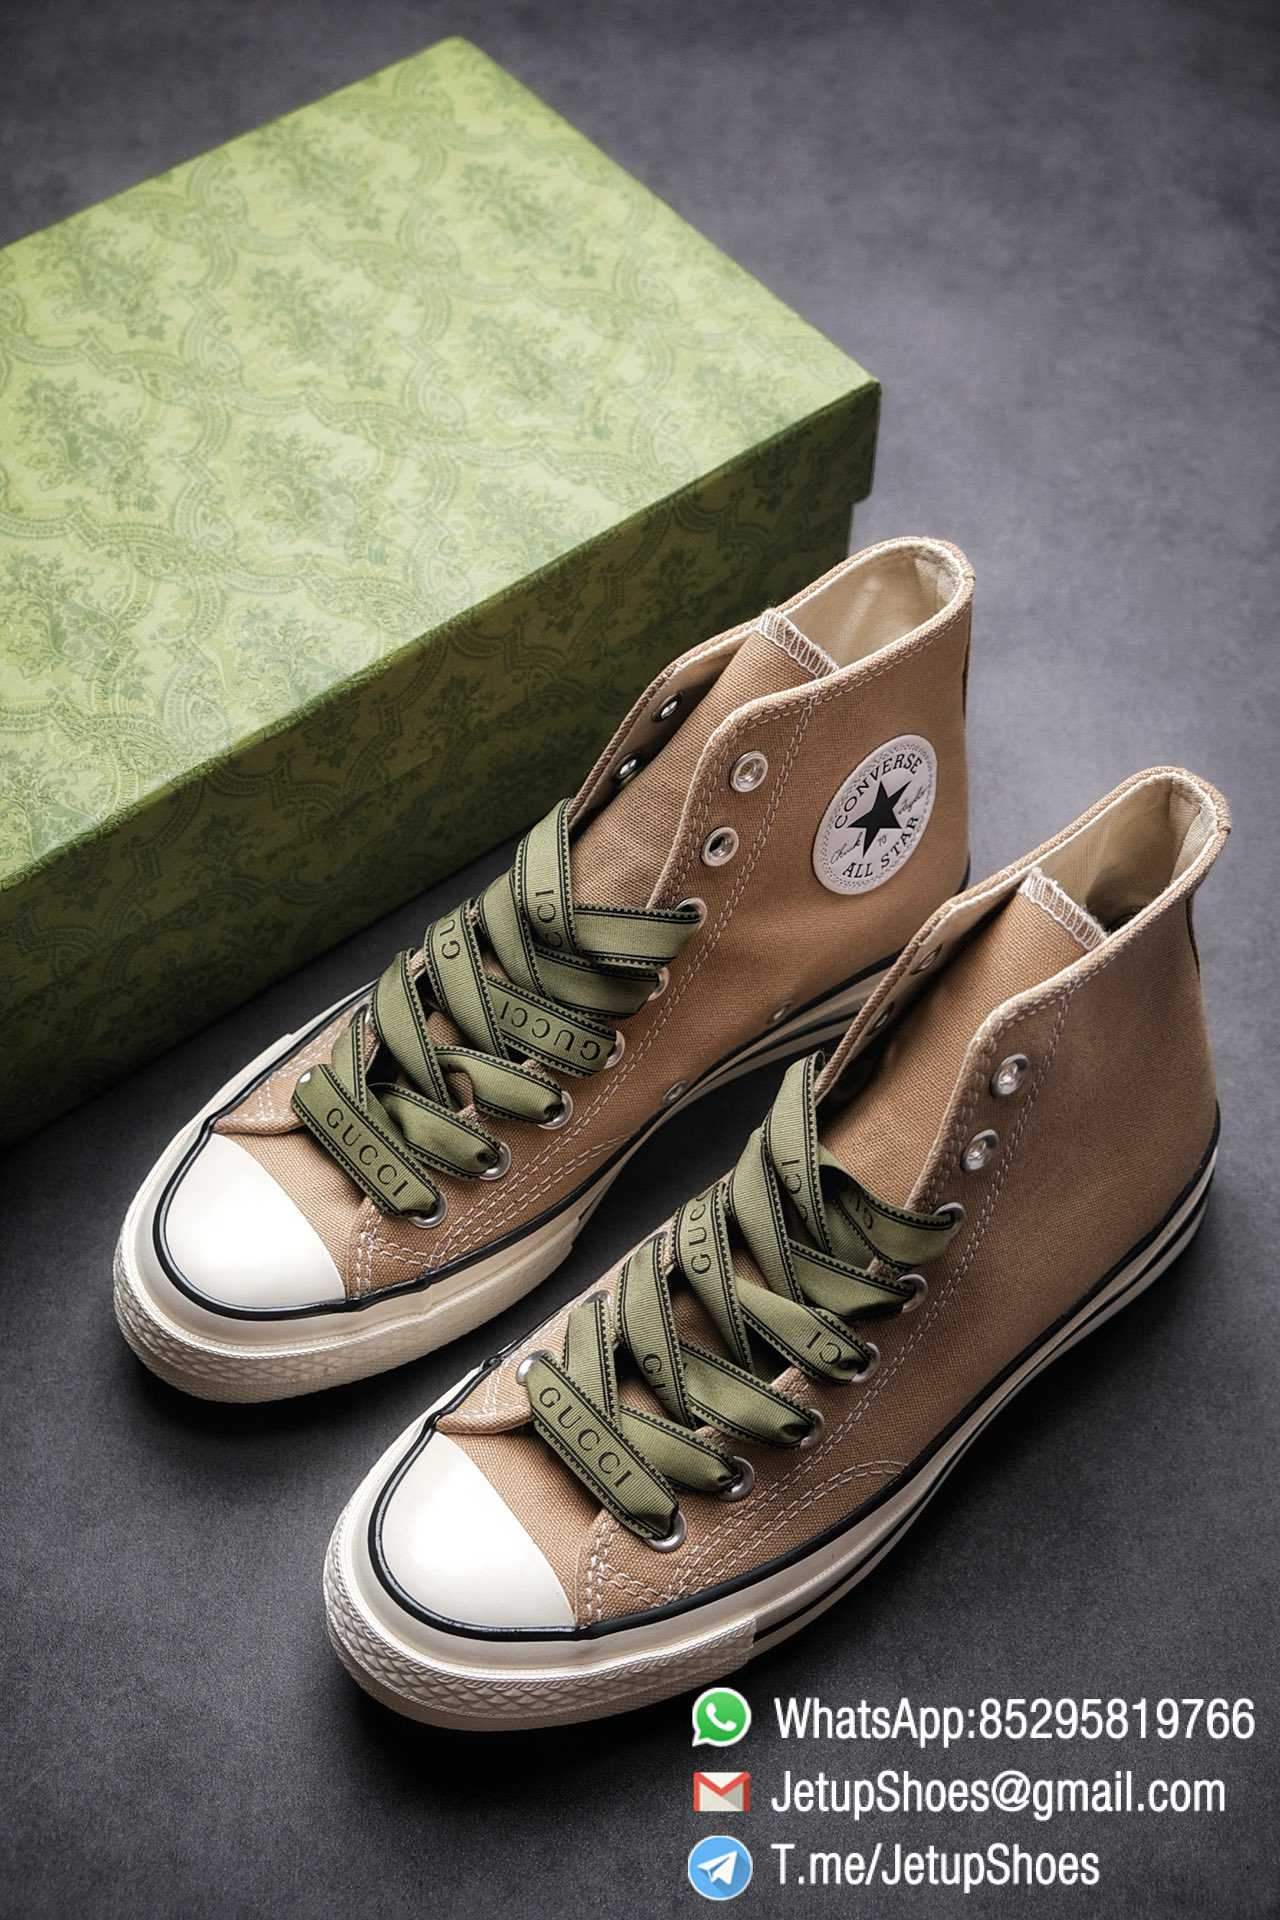 Womens Converse 1970S Special Collaboration Sneaker High Top Trainer Sneakers Vintage Inspired Green Shoelace Black Upper 2021 Spring 01